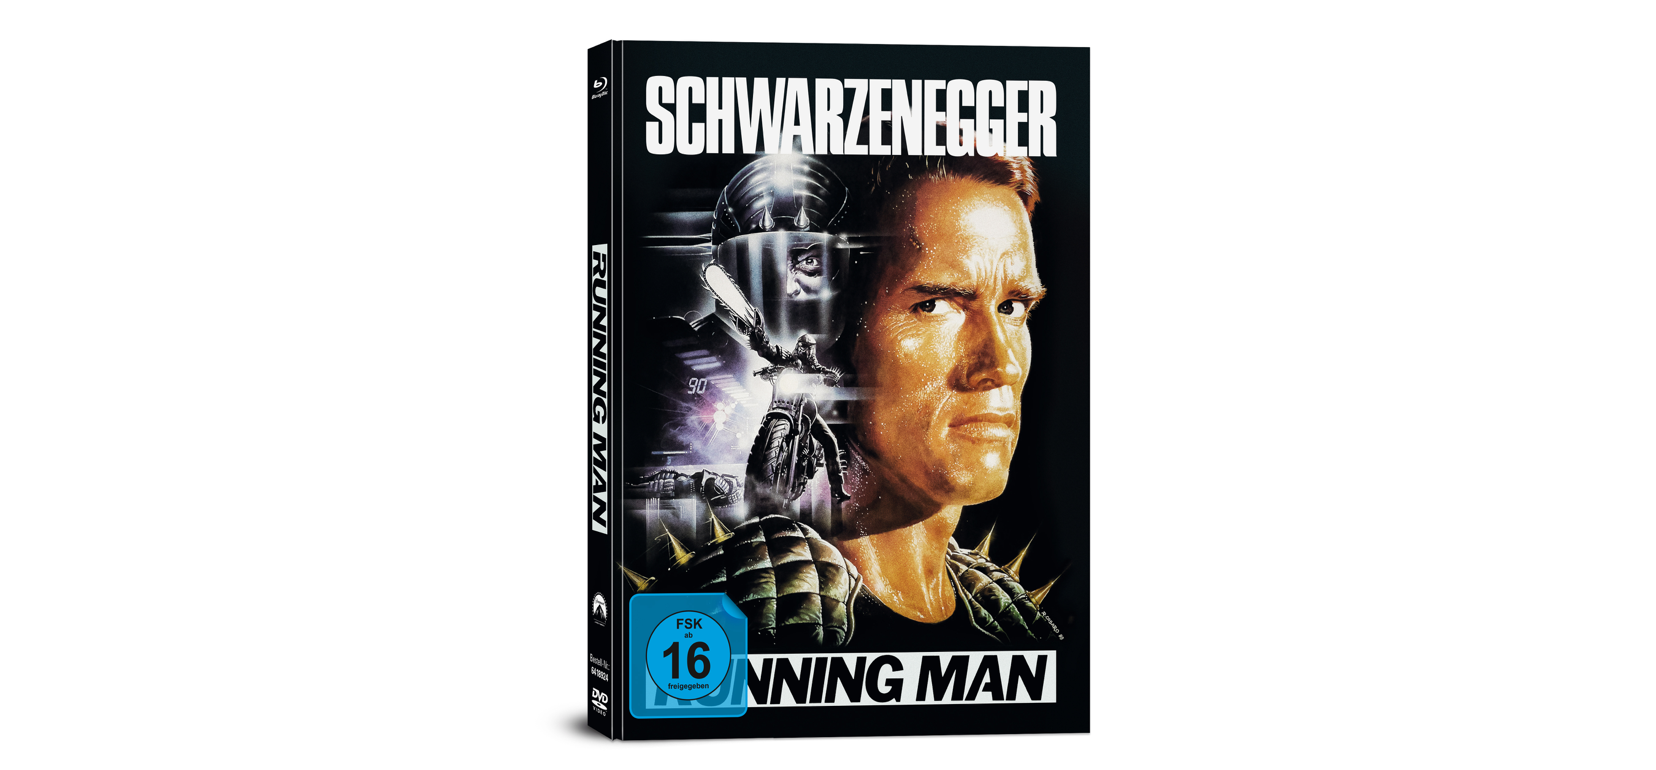 Running Man, Arnold Schwarzenegger, Action